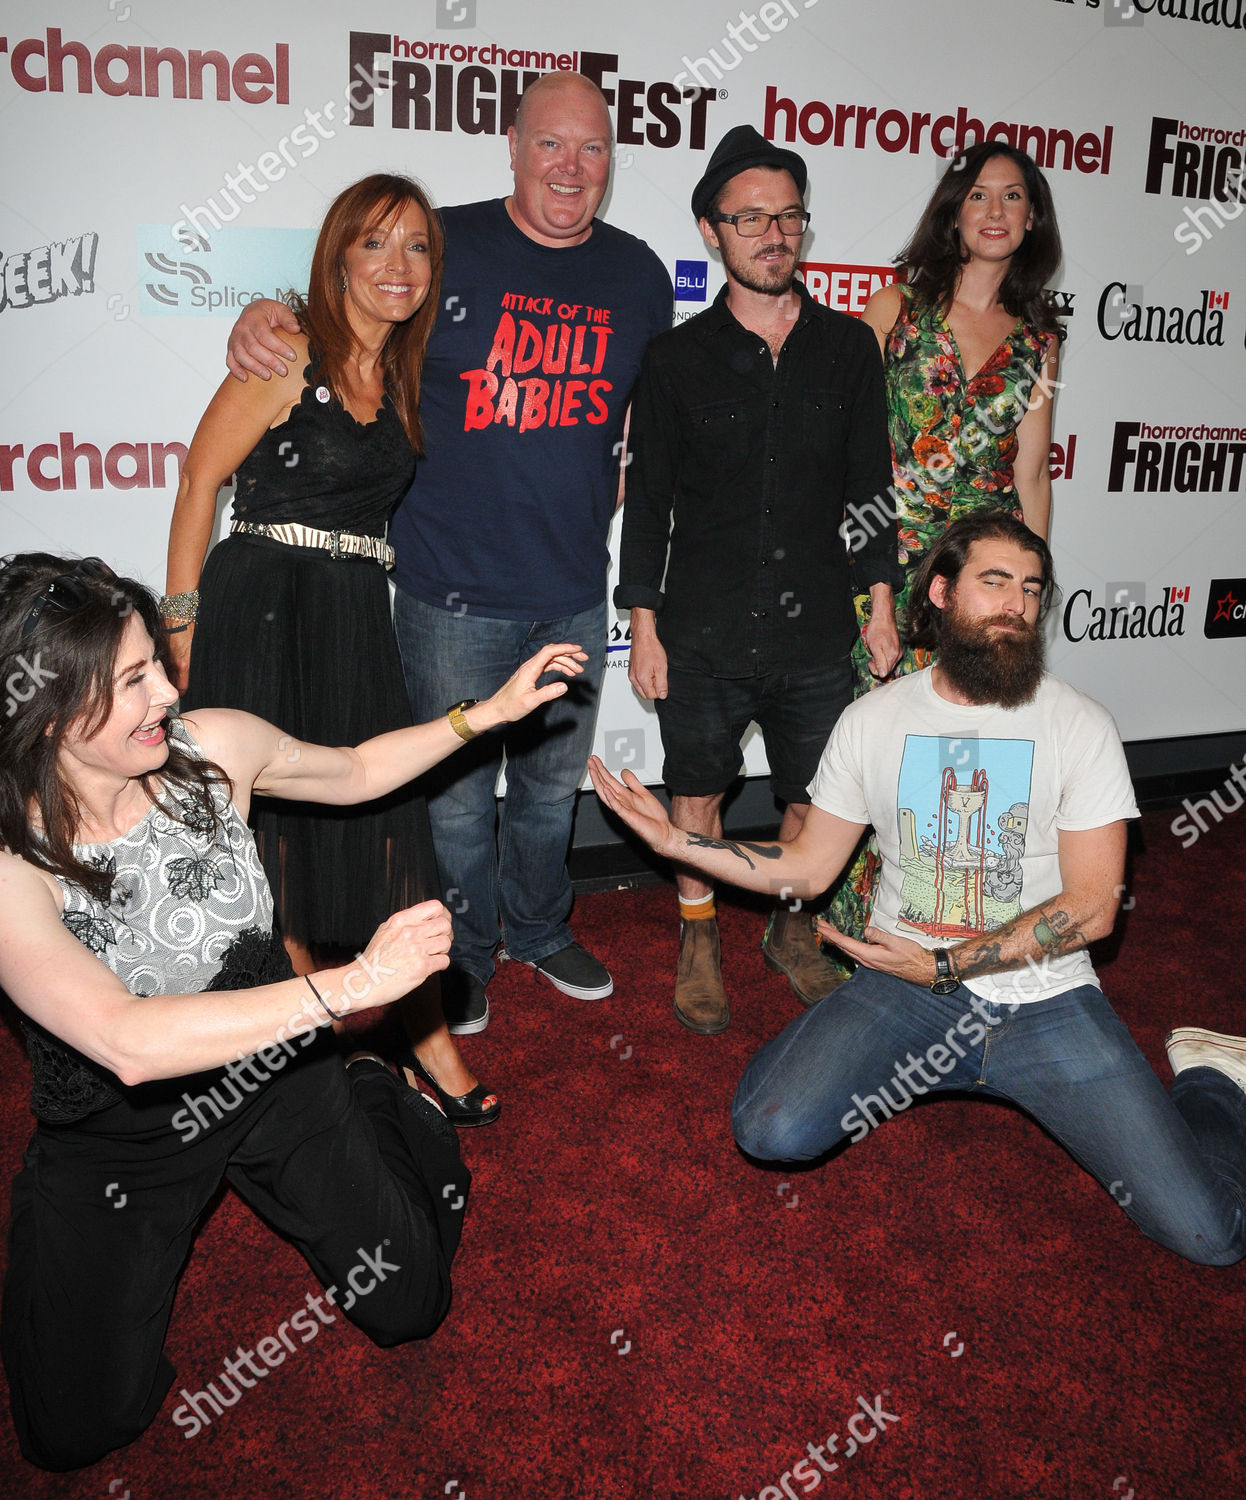 'Attack of the Adult Babies' film premiere, Horror Channel FrightFest,  London, UK Stock Image by Can Nguyen for editorial use, Aug 26, 2017